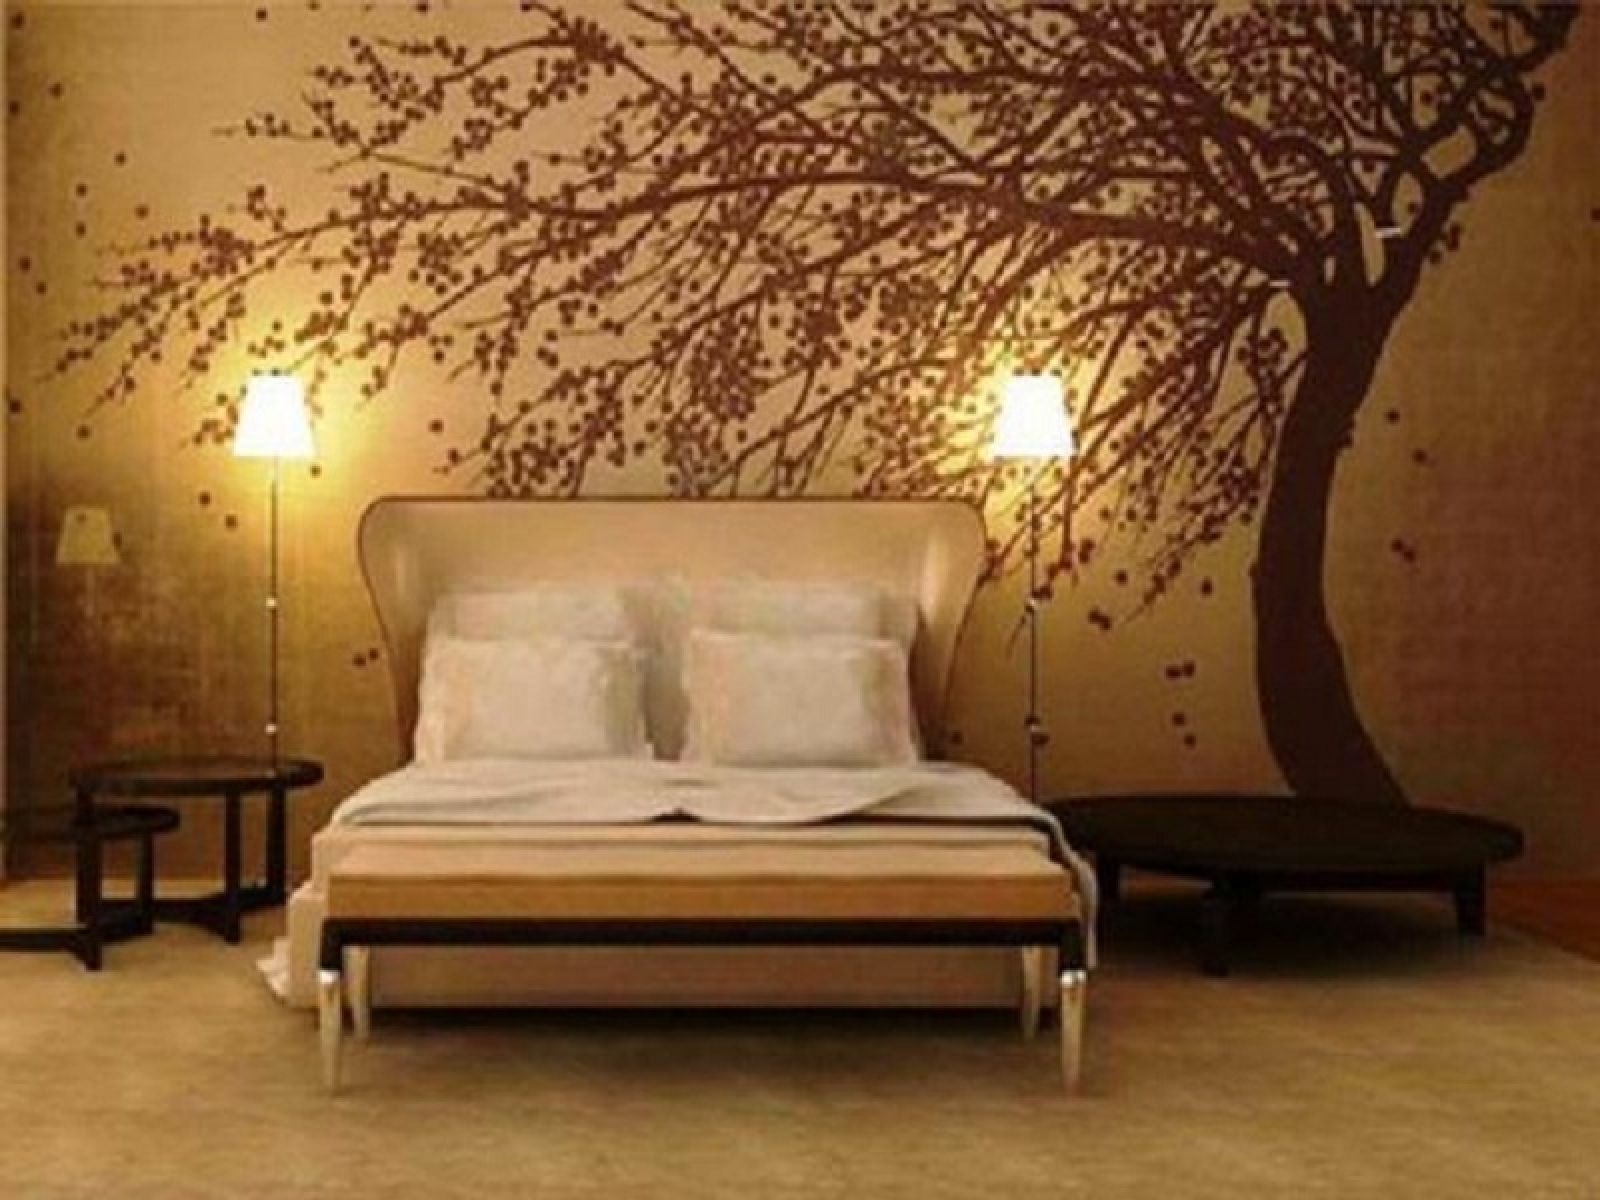 best diy wallpaper designs for bedrooms bedroom ideas like the look. best diy wallpaper designs for bedrooms bedroom ideas like the